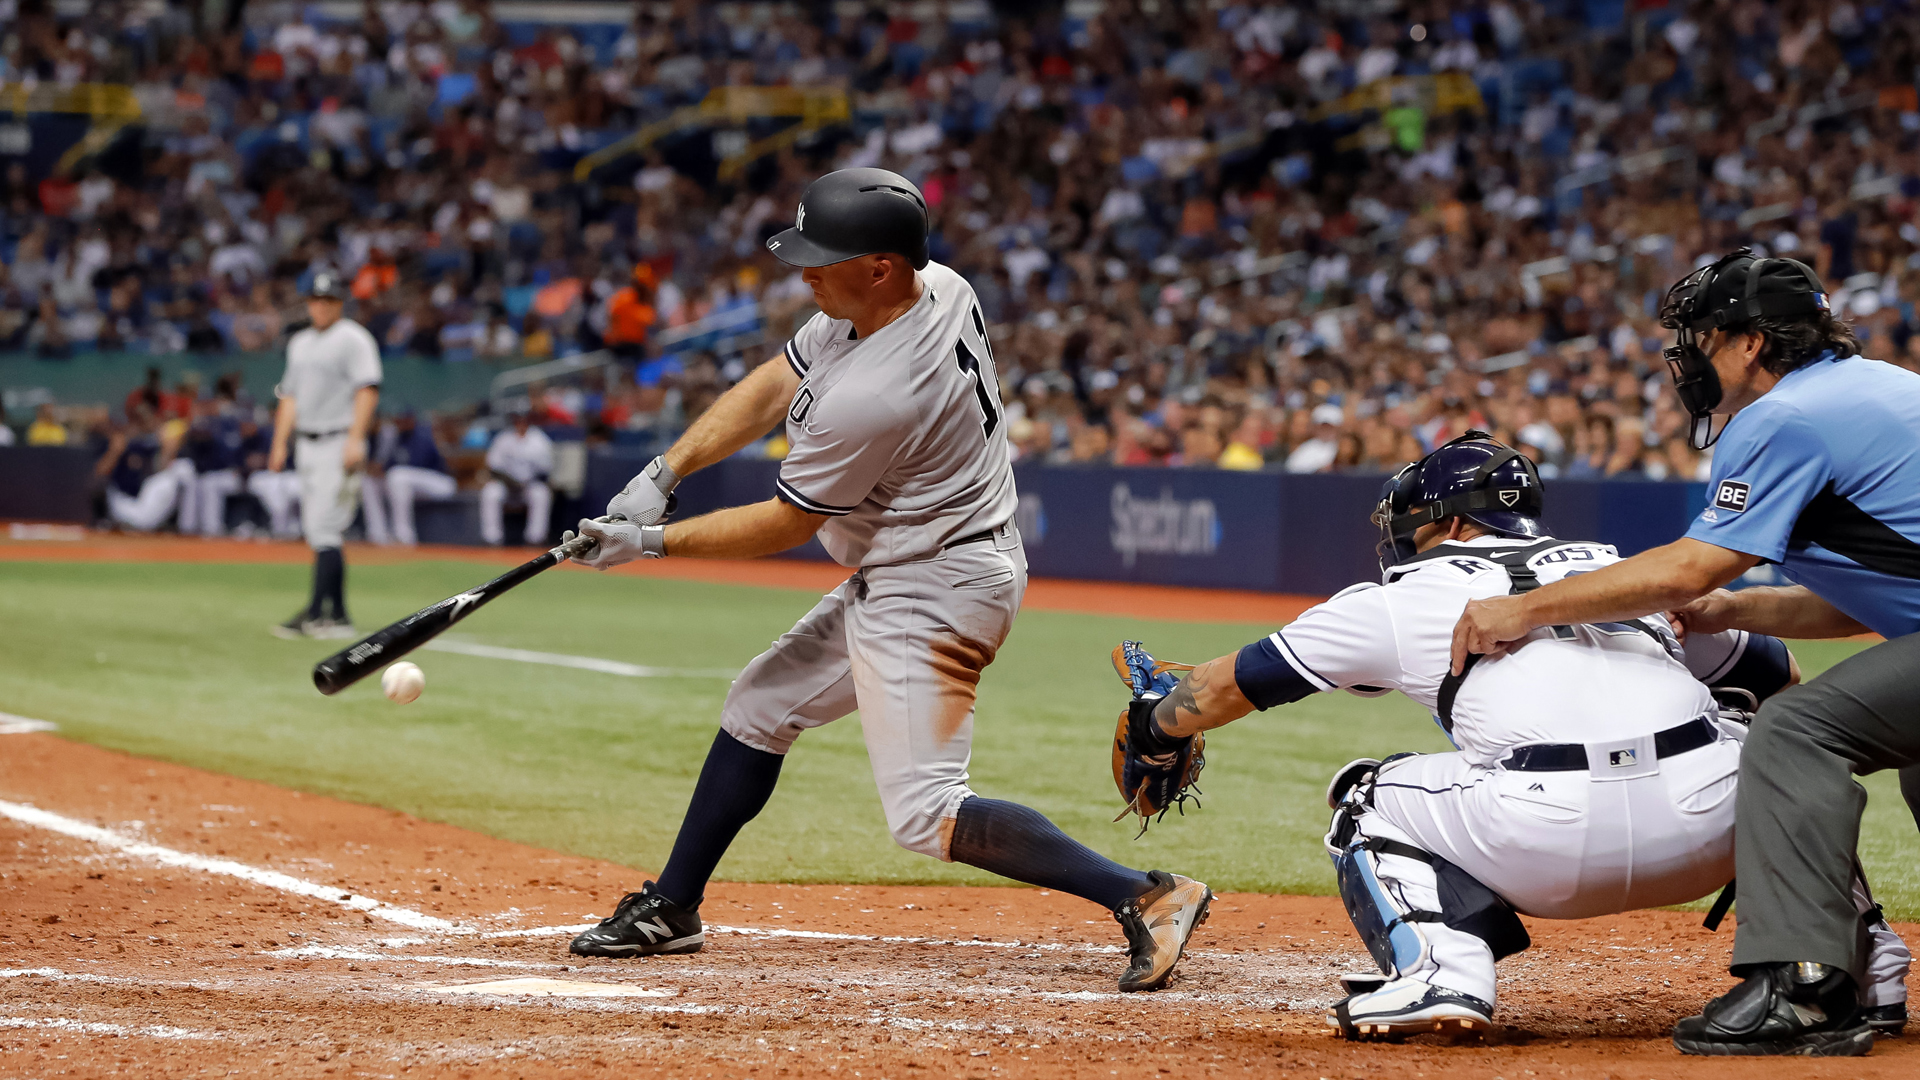 Brett Gardner #11 of the New York Yankees singles in front of Wilson Ramos #40 of the Tampa Bay Rays and umpire Phil Cuzzi #10 in the seventh inning of a baseball game at Tropicana Field on June 22, 2018 in St. Petersburg, Florida. (Credit: Mike Carlson/Getty Images)